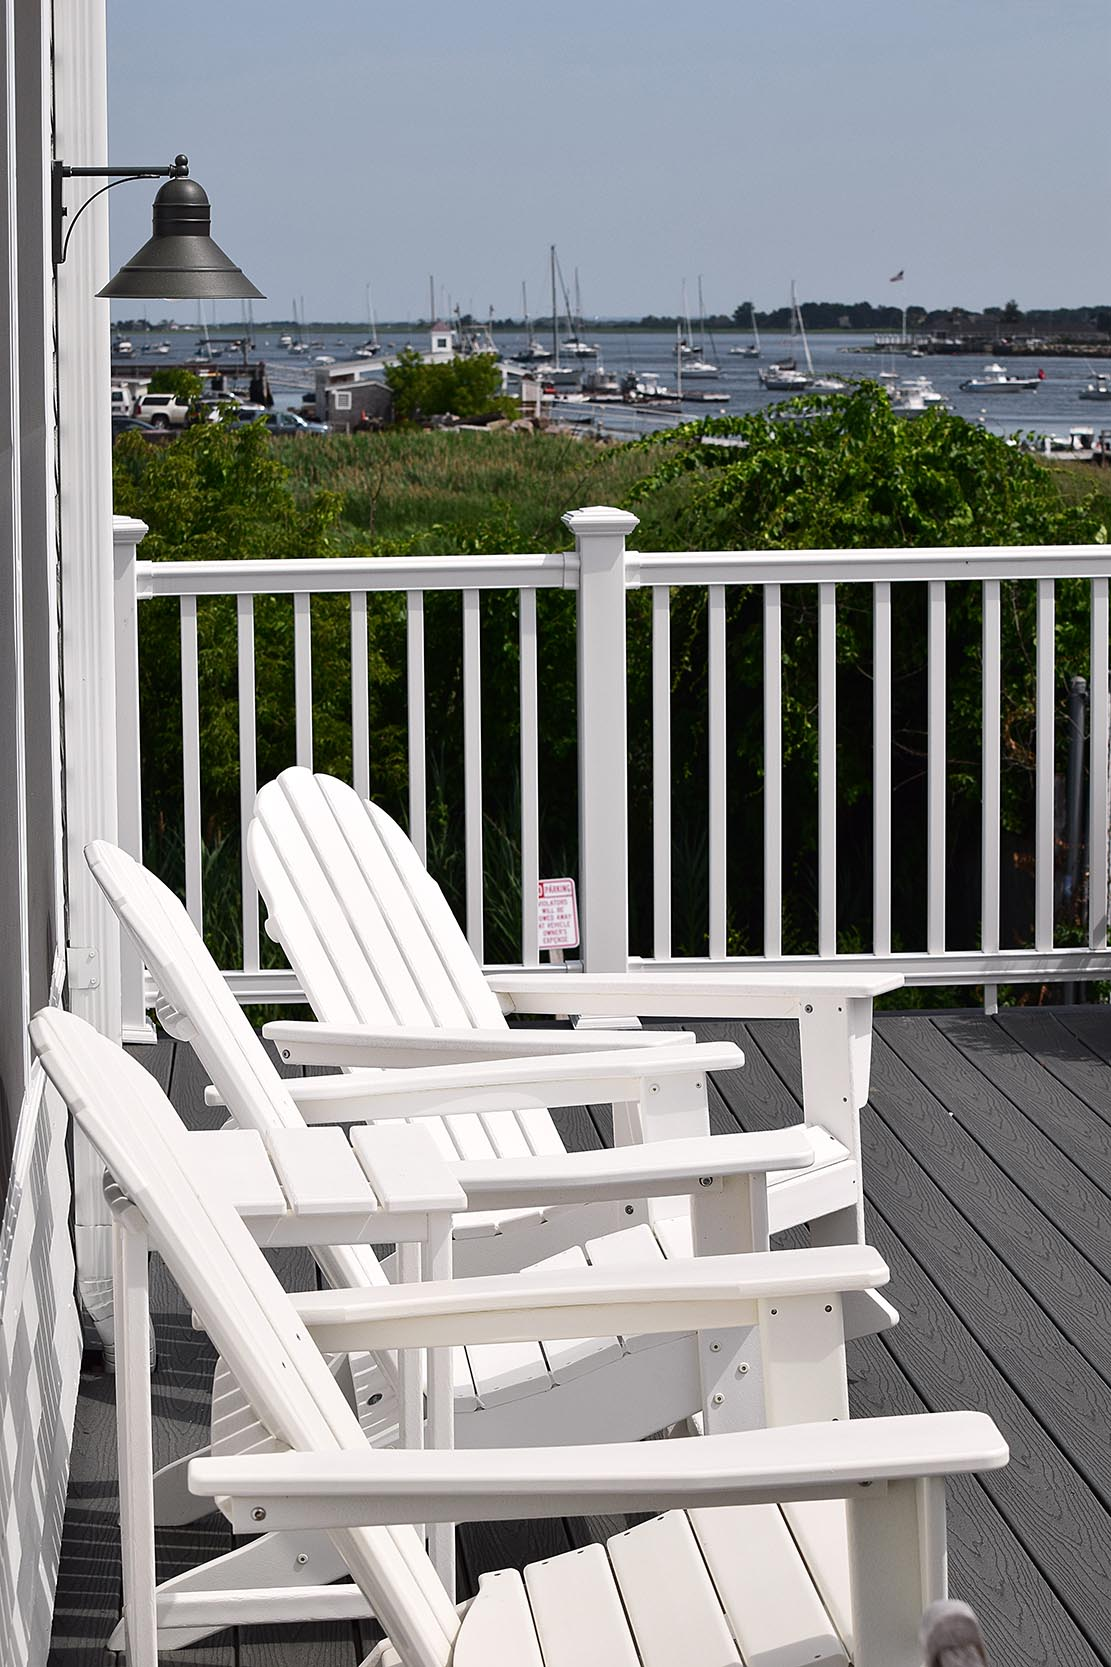 Adirondack Chairs on the Deck